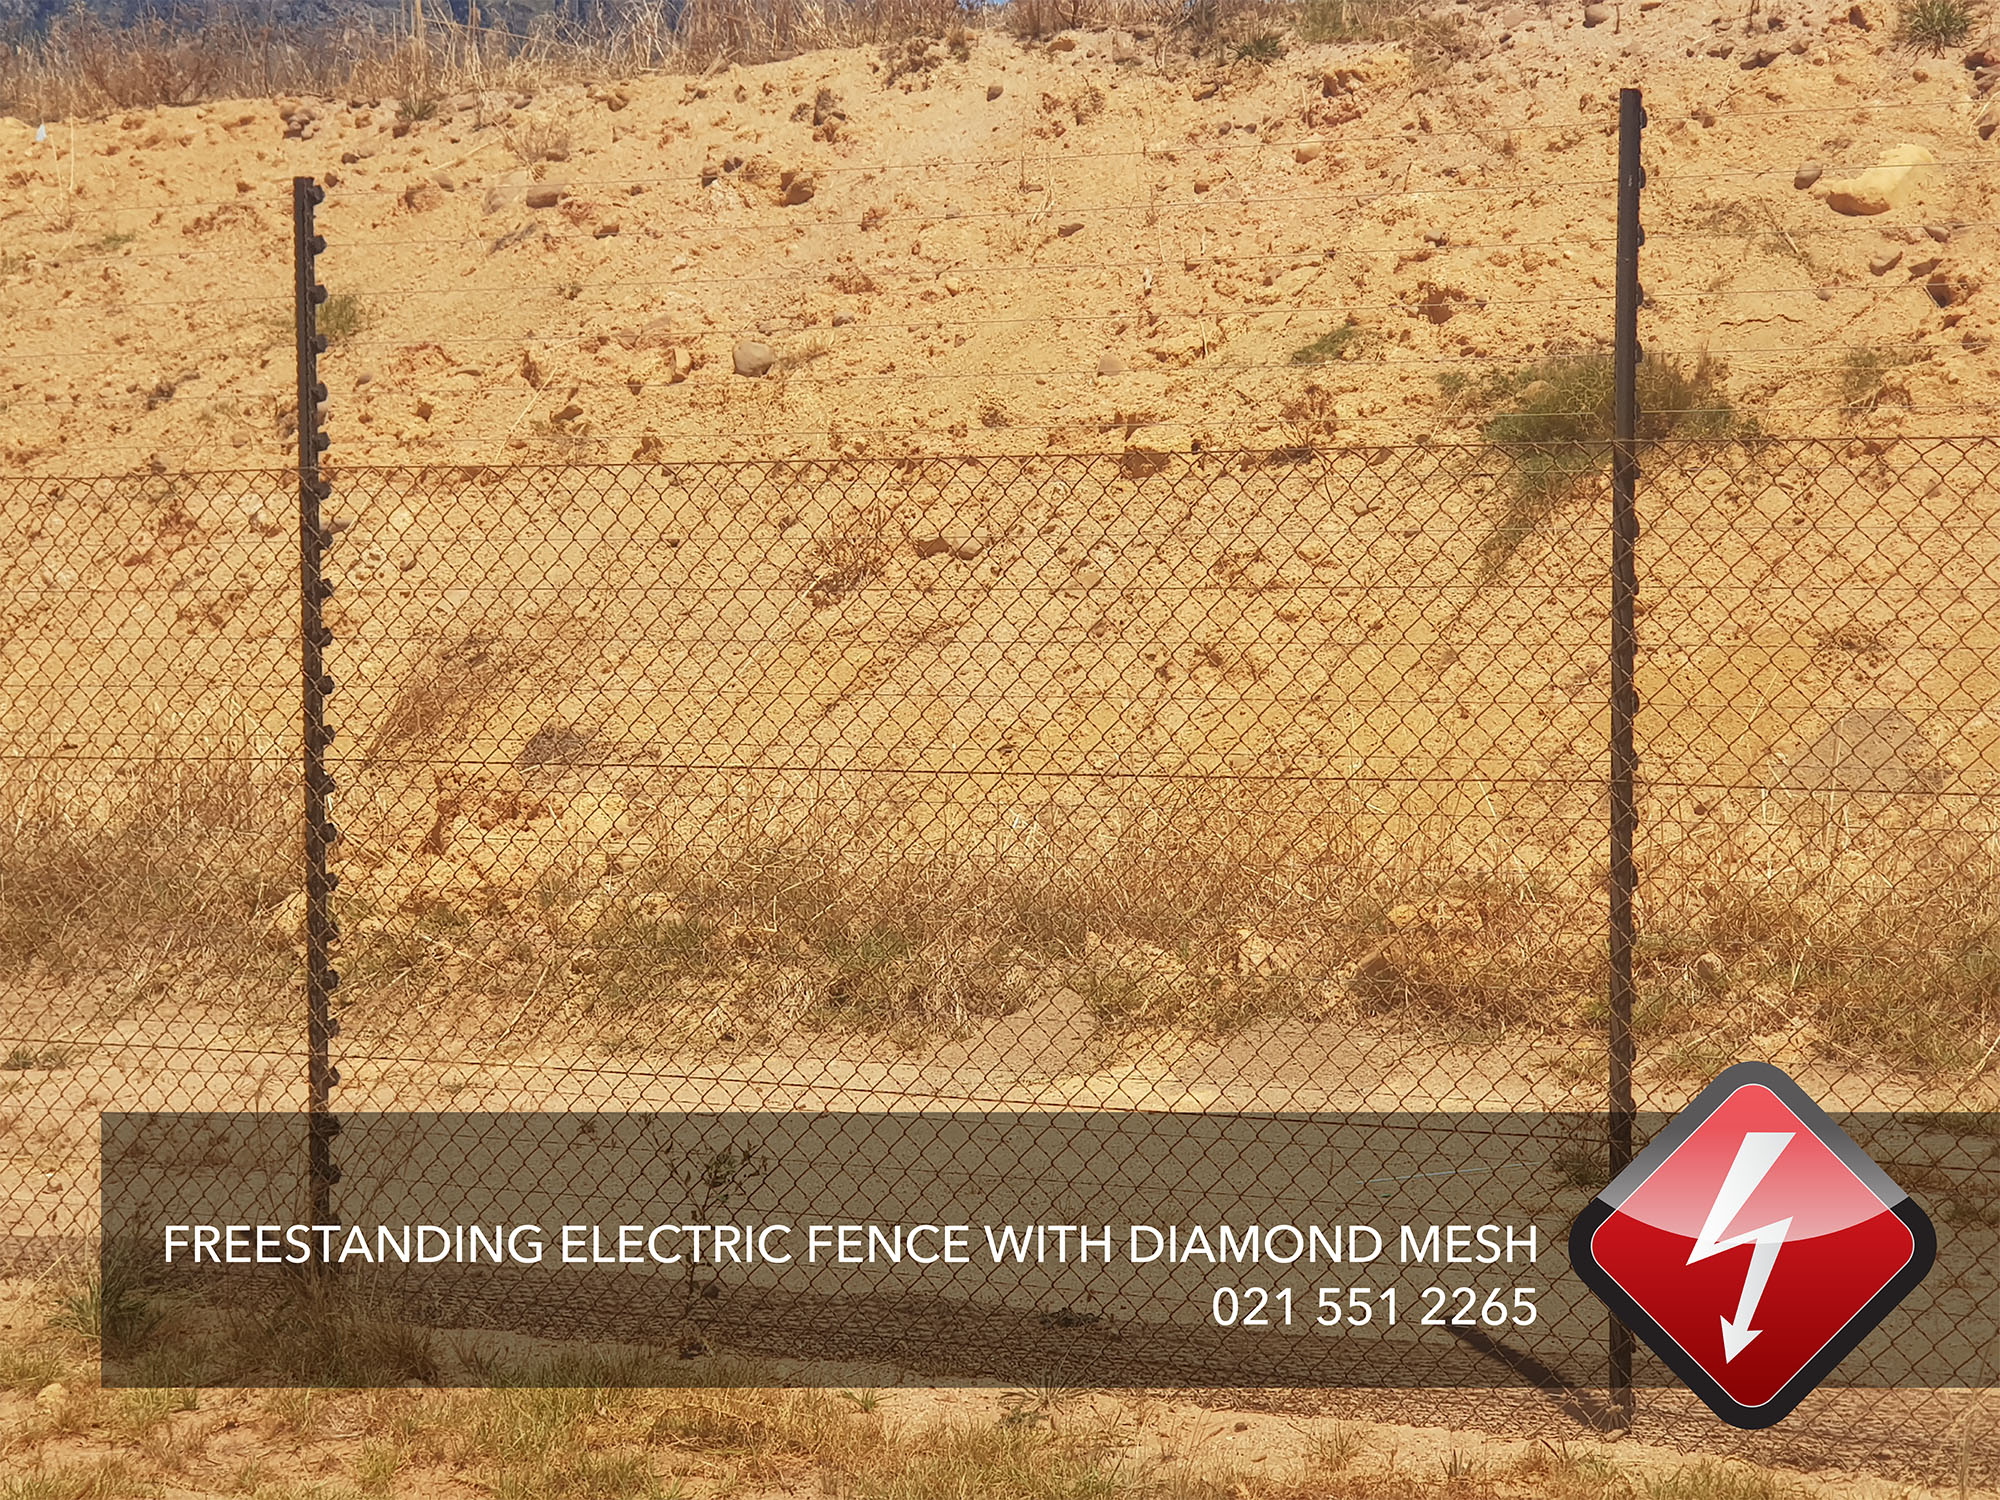 Freestanding Fence with  Mesh_logo  copy.jpg